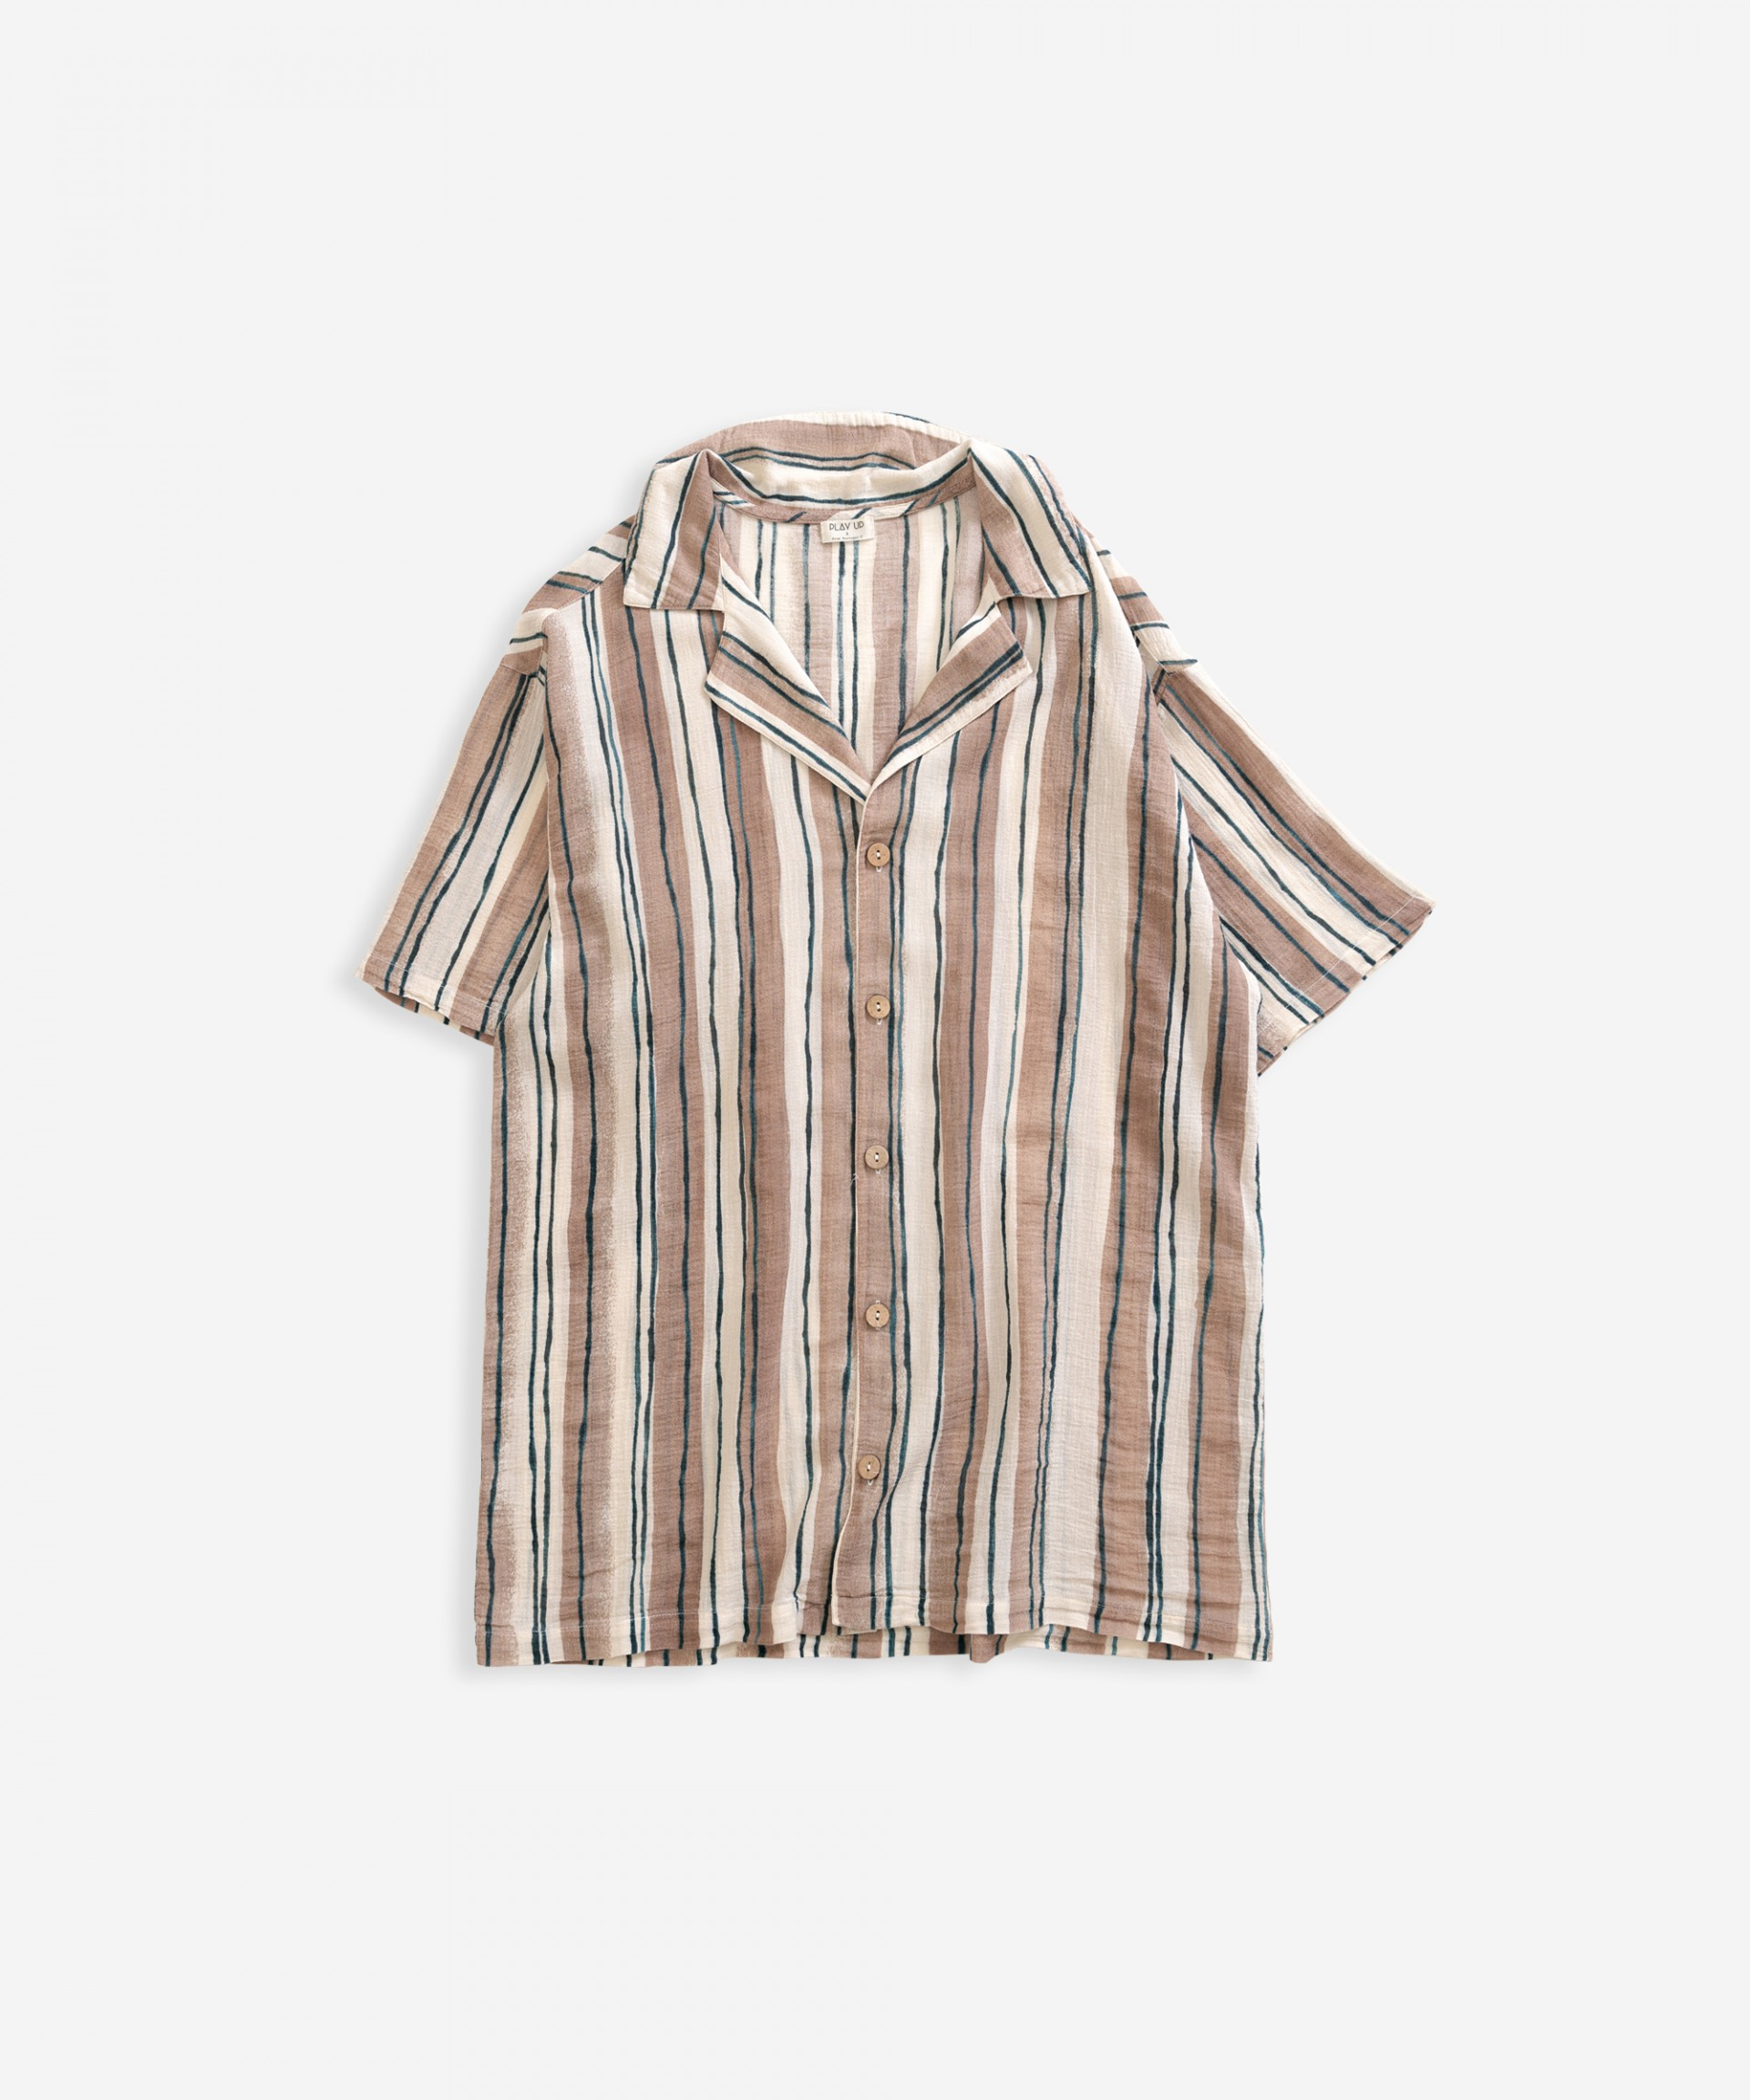 Shirt with vertical stripes | Weaving